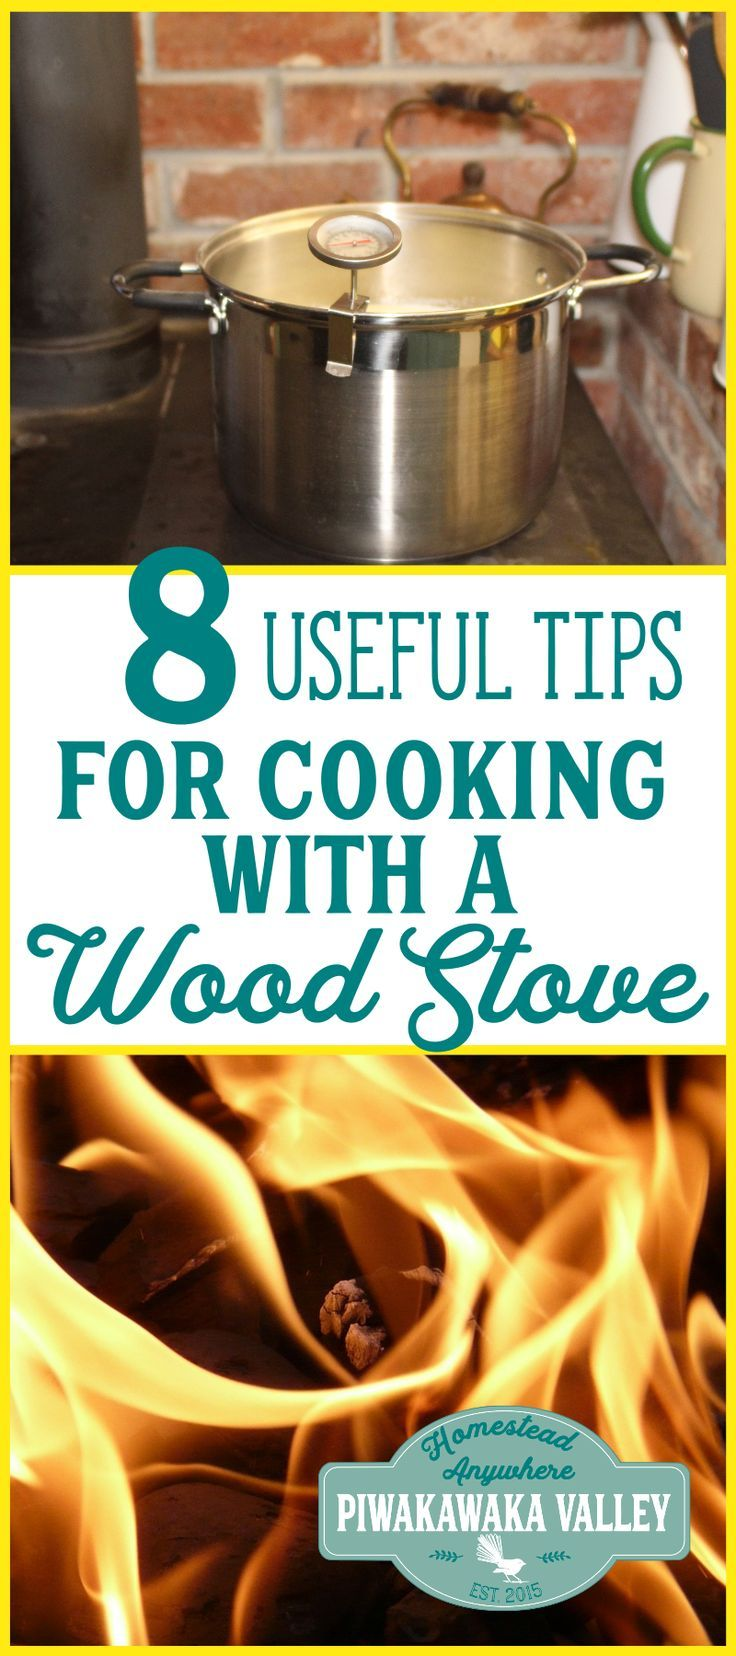 Cooking in the wood stove is a bit different to an electric or gas oven, but it isn't as tricky as some might have you believe. Modern wood cookers are very easy to get hot, and very efficient with their fuel. Here are some tips to get you started